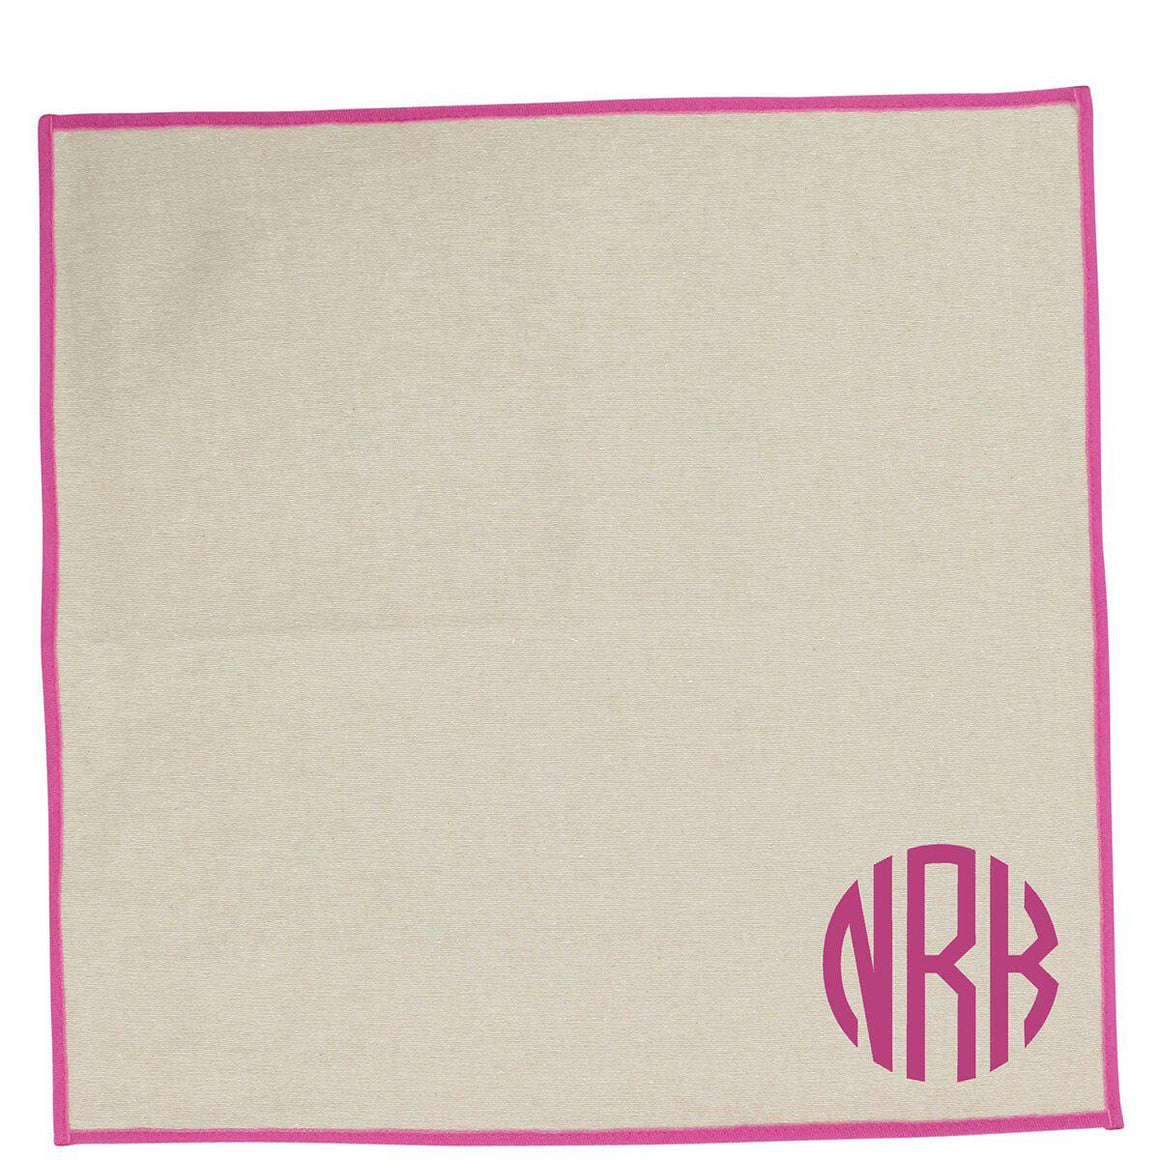 Jute Dinner Napkins Pink Trim Set of 4 - The Preppy Bunny